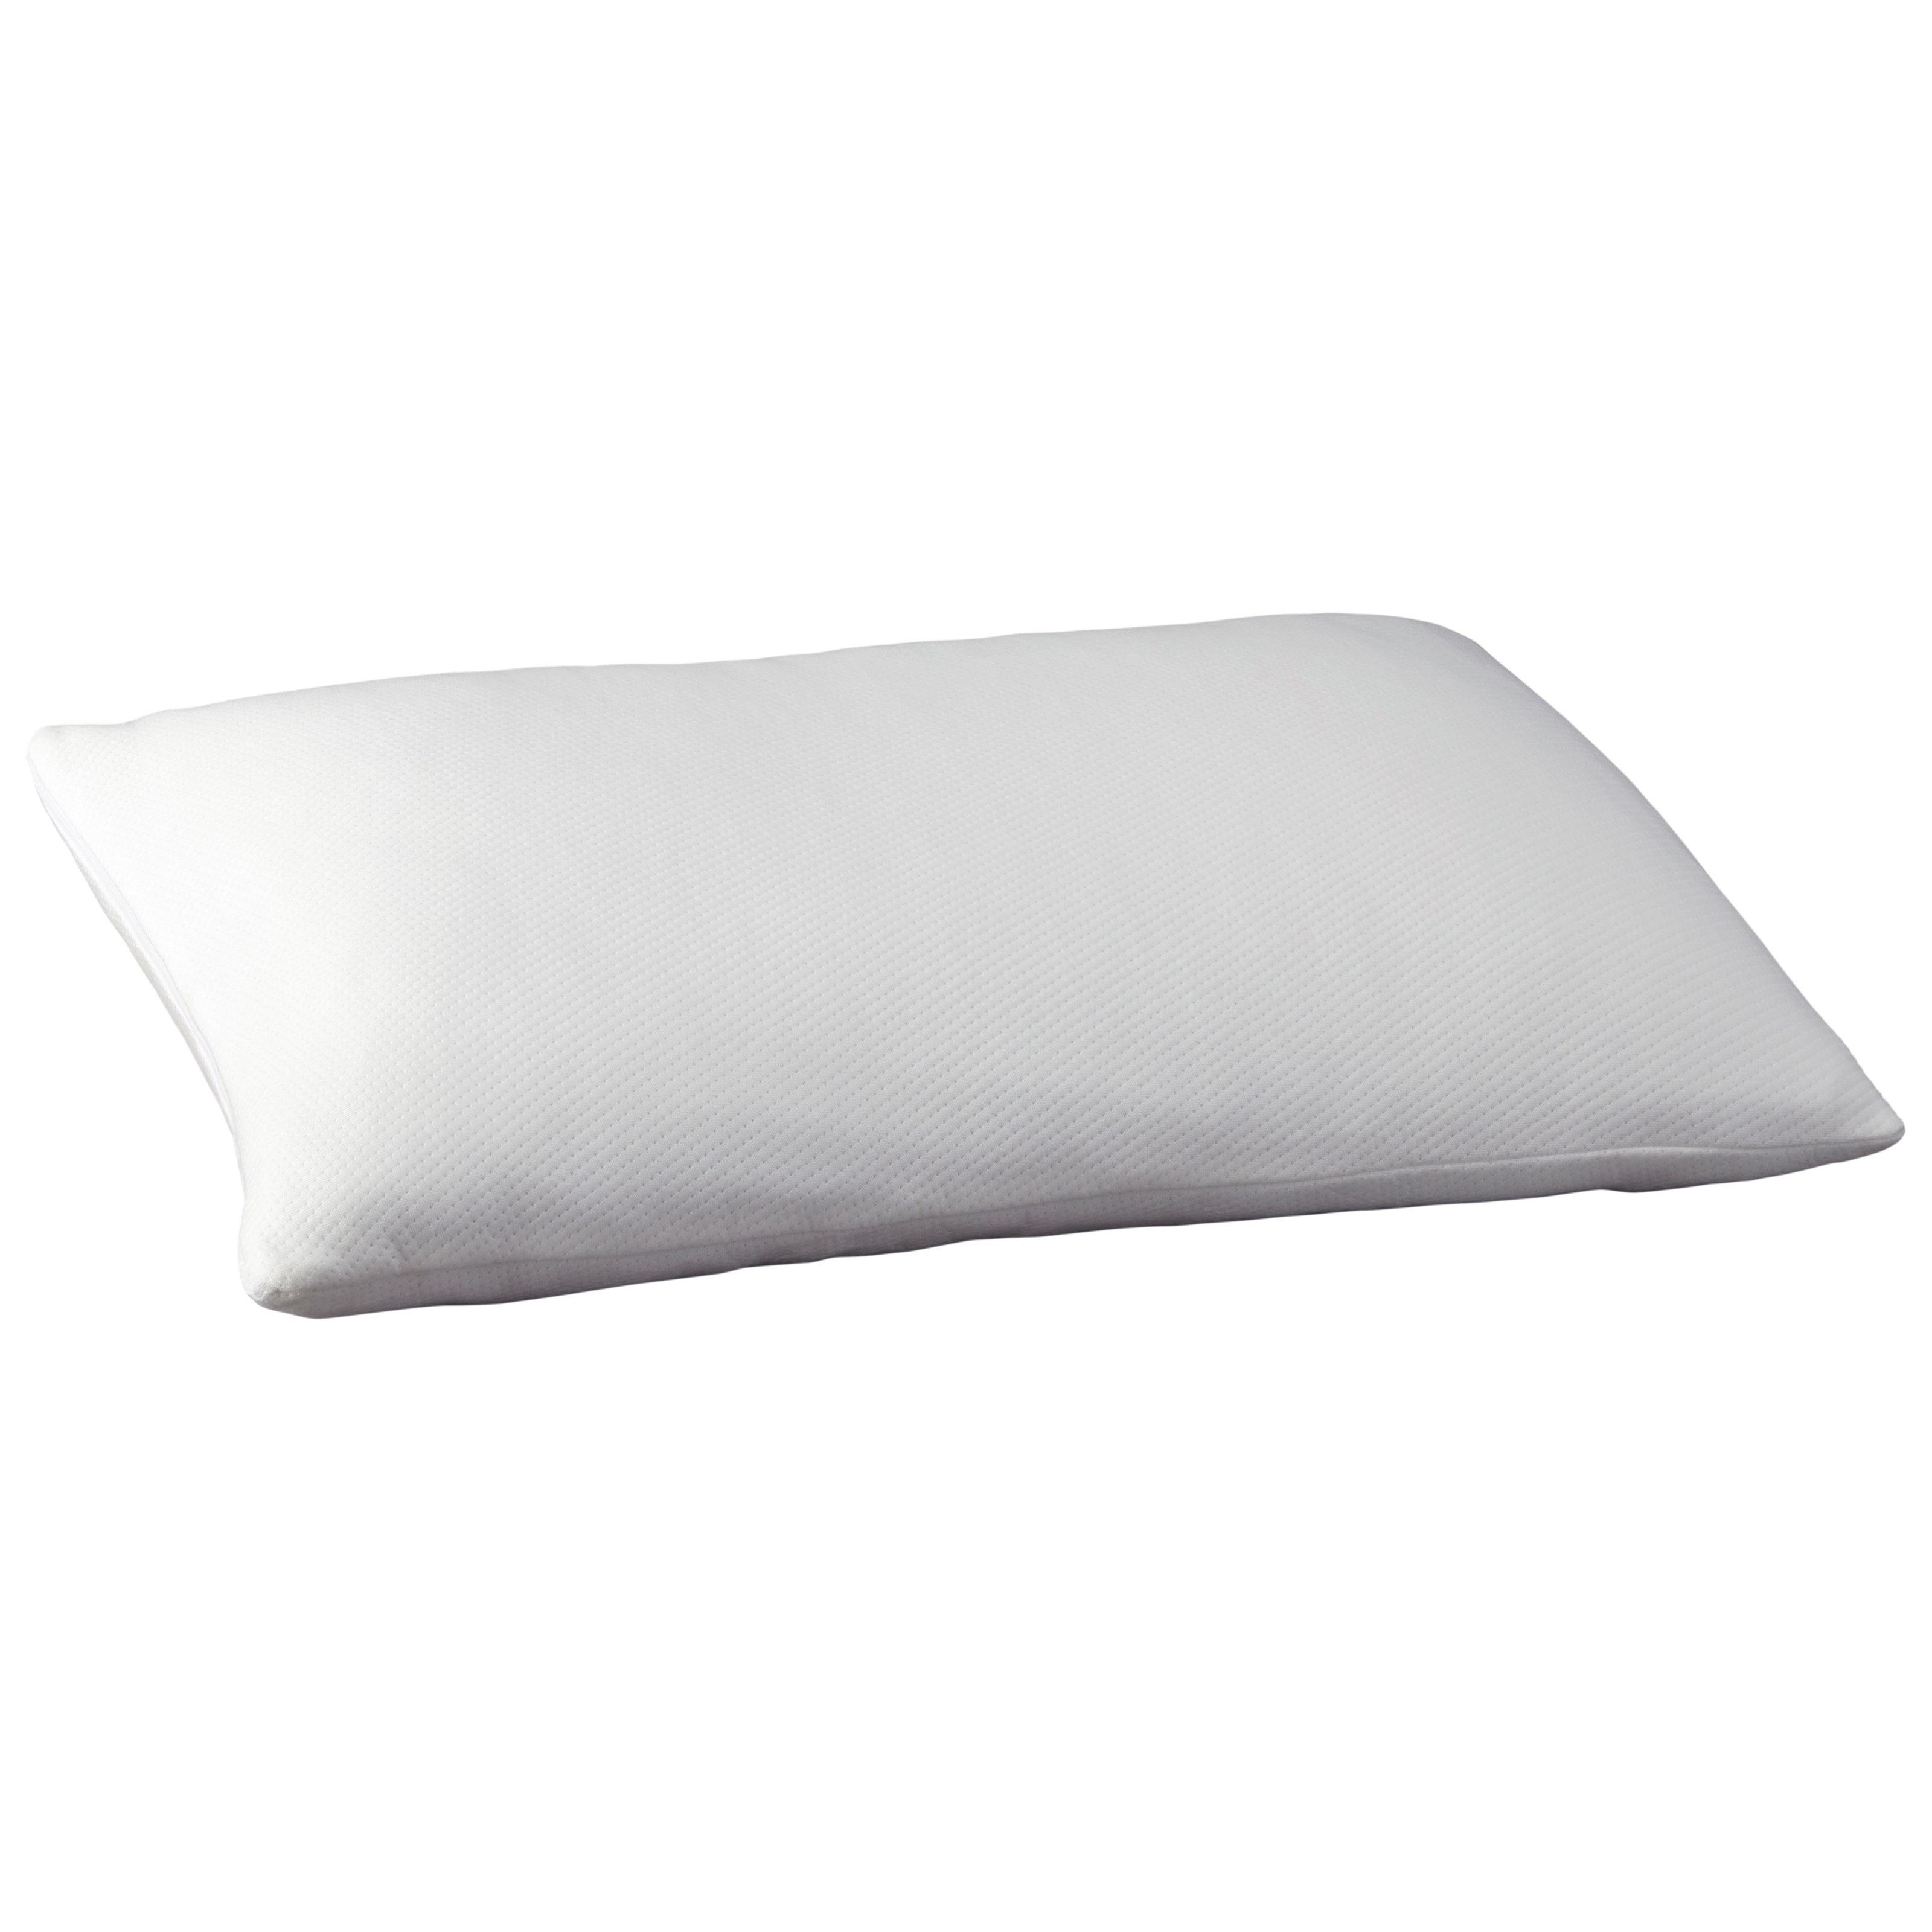 2016 Pillows Memory Foam Pillow by Sierra Sleep at Rooms for Less